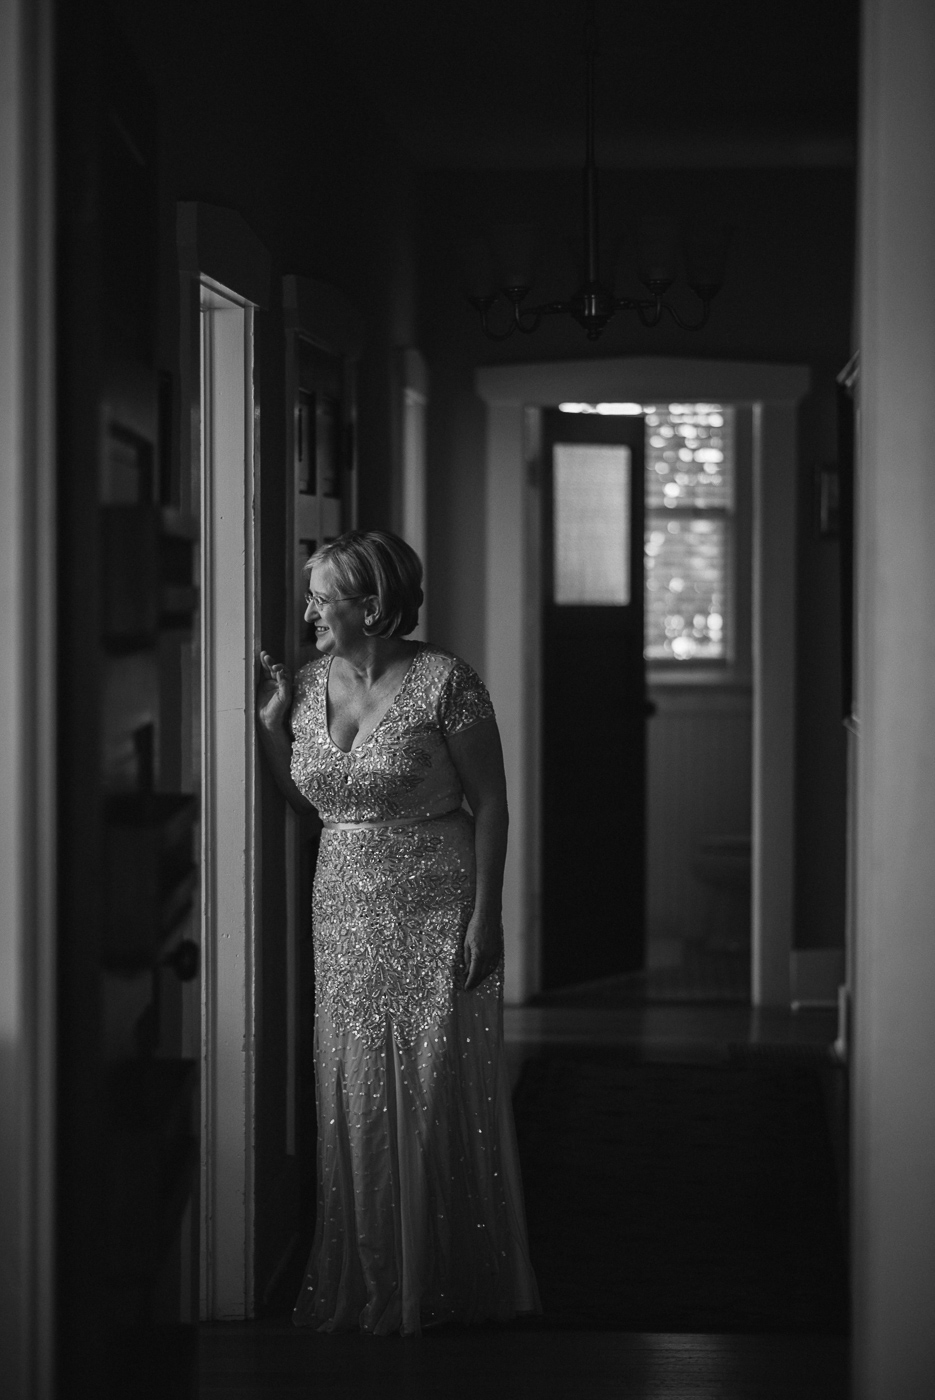 PHOCO2018TopPhotos_wedding_portrait-10.jpg